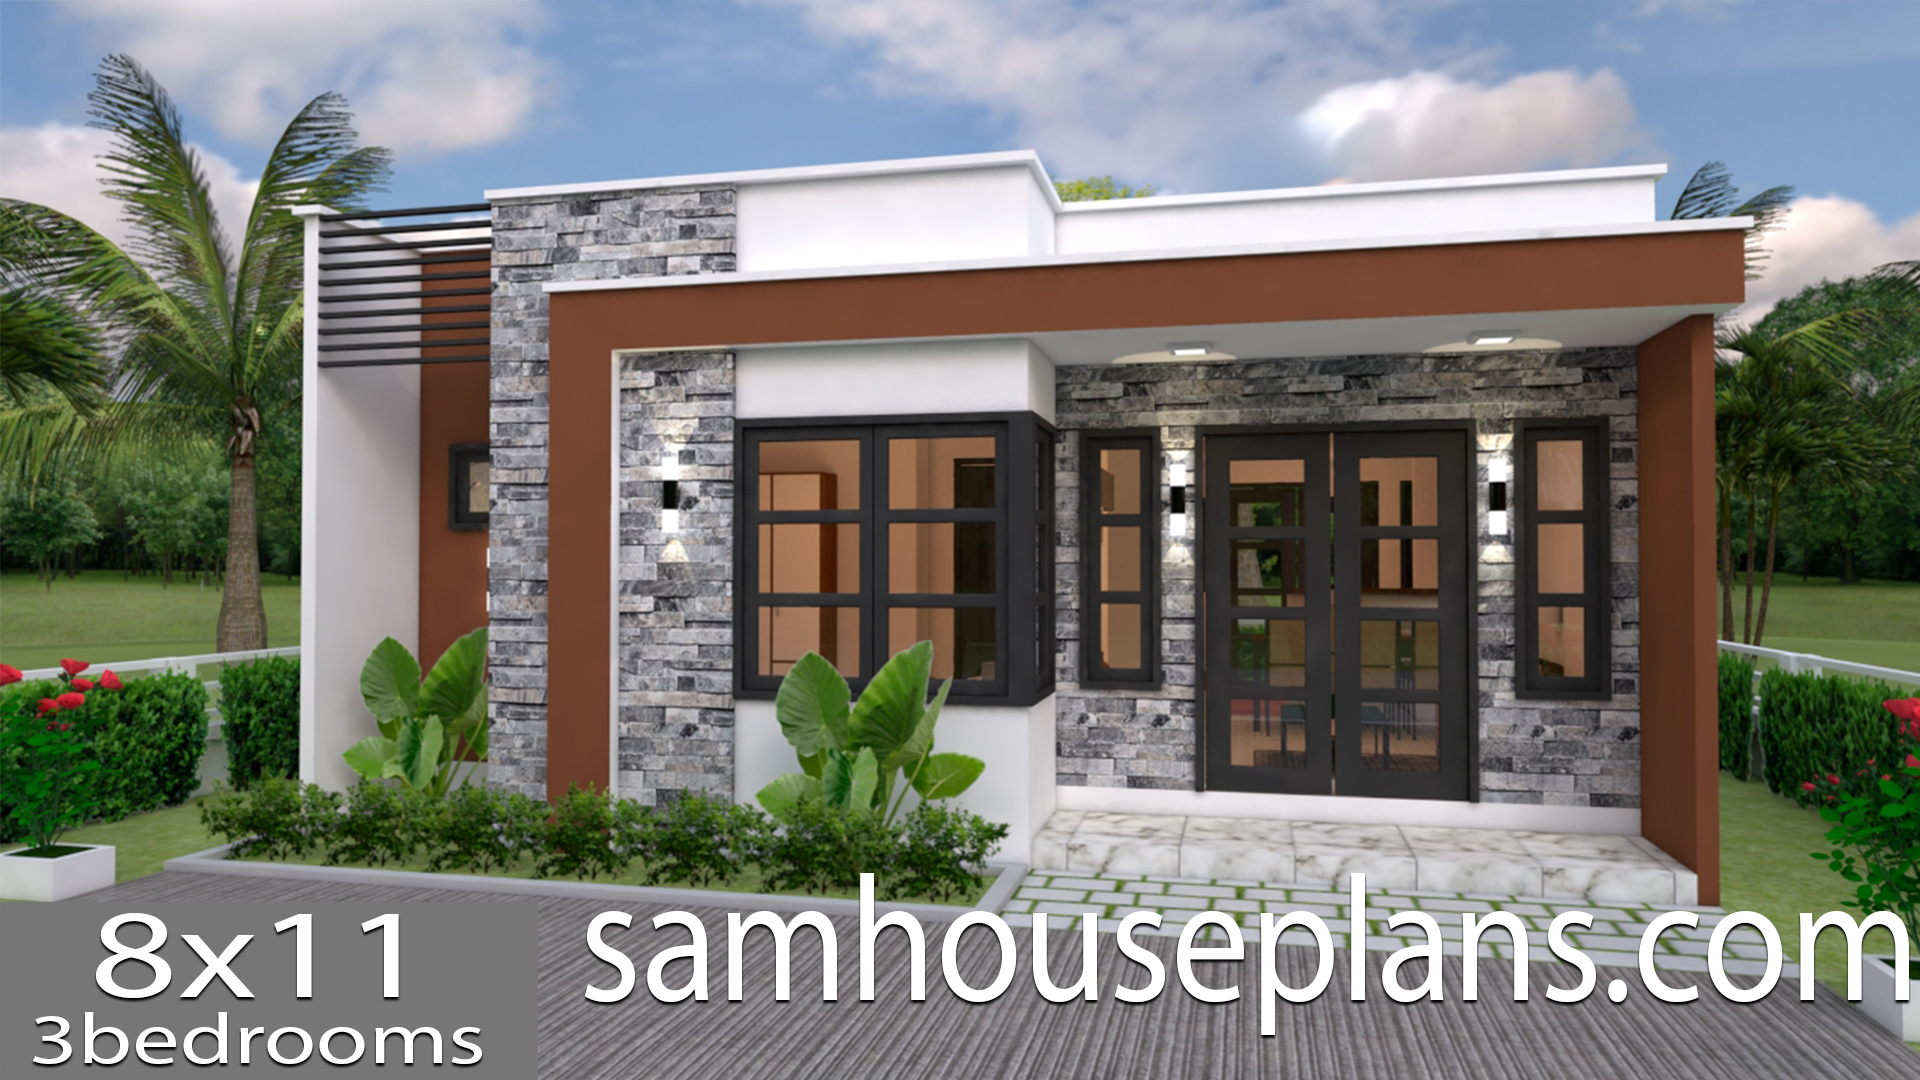 House Plans 8x11 with 3 bedrooms Full Plans - Sam House Plans